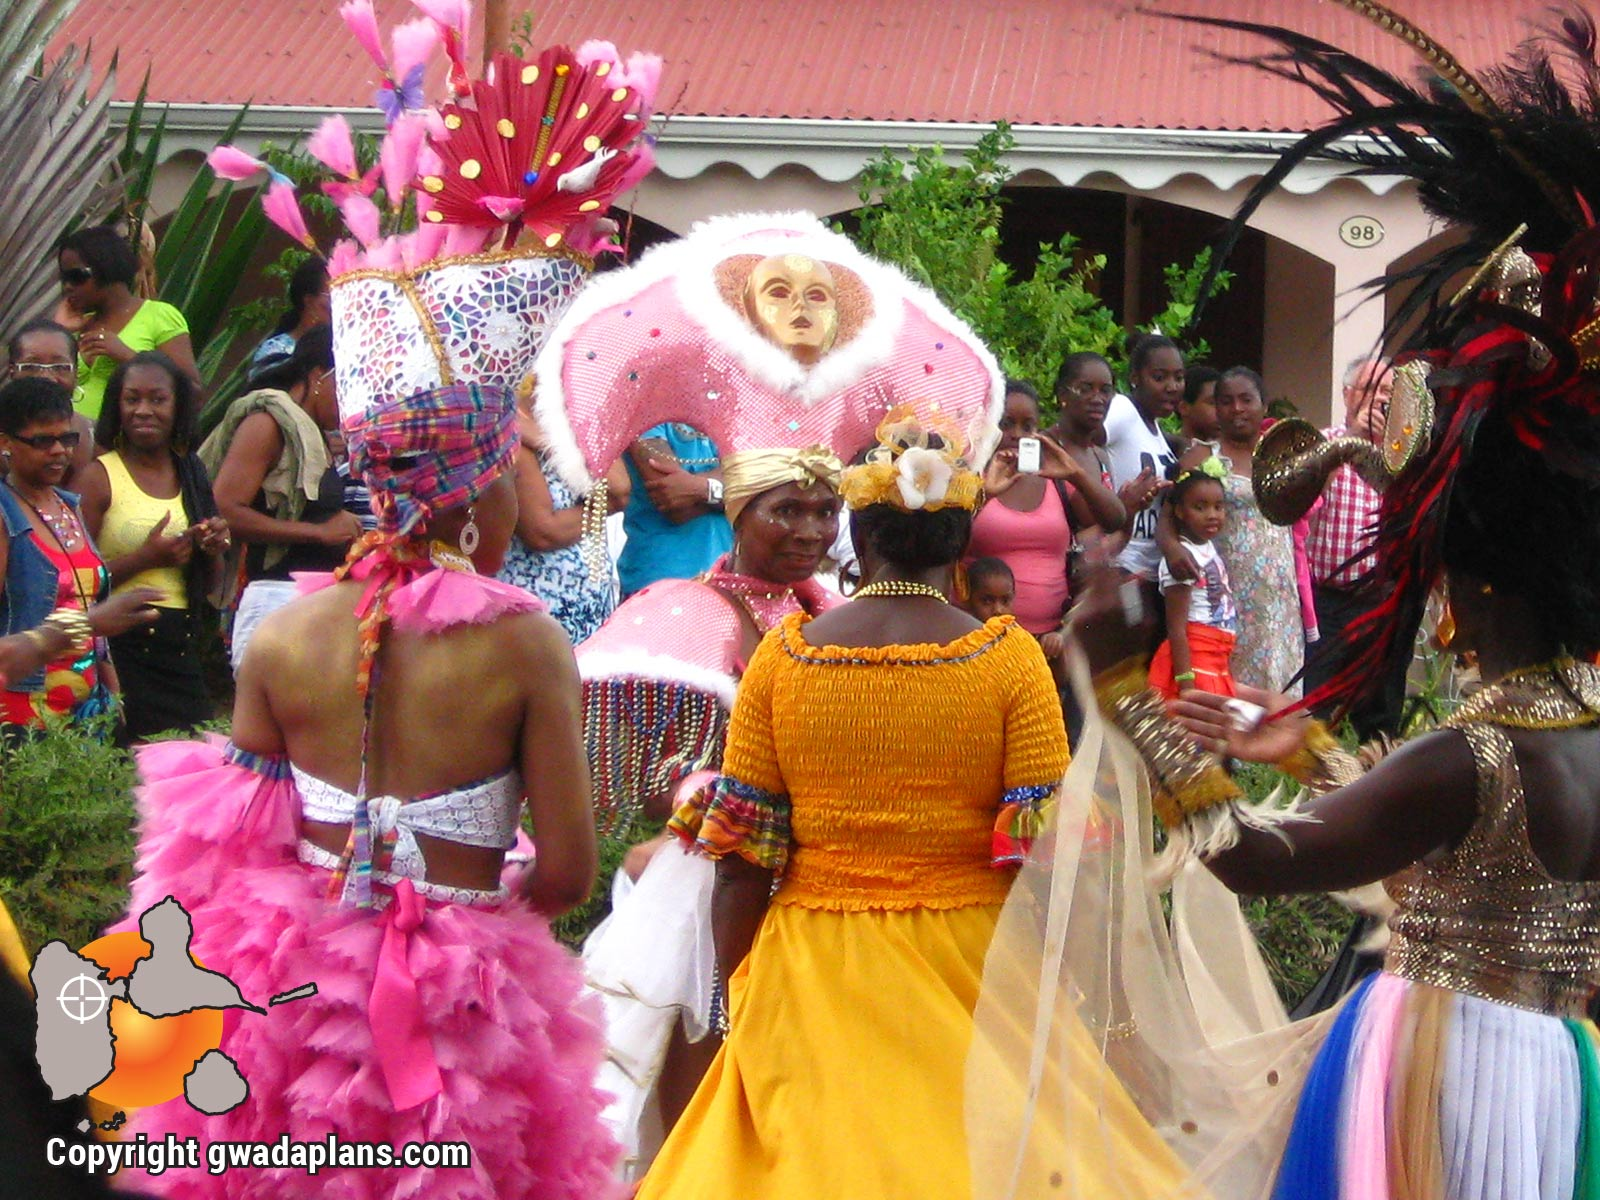 Carnaval Guadeloupe - Costumes